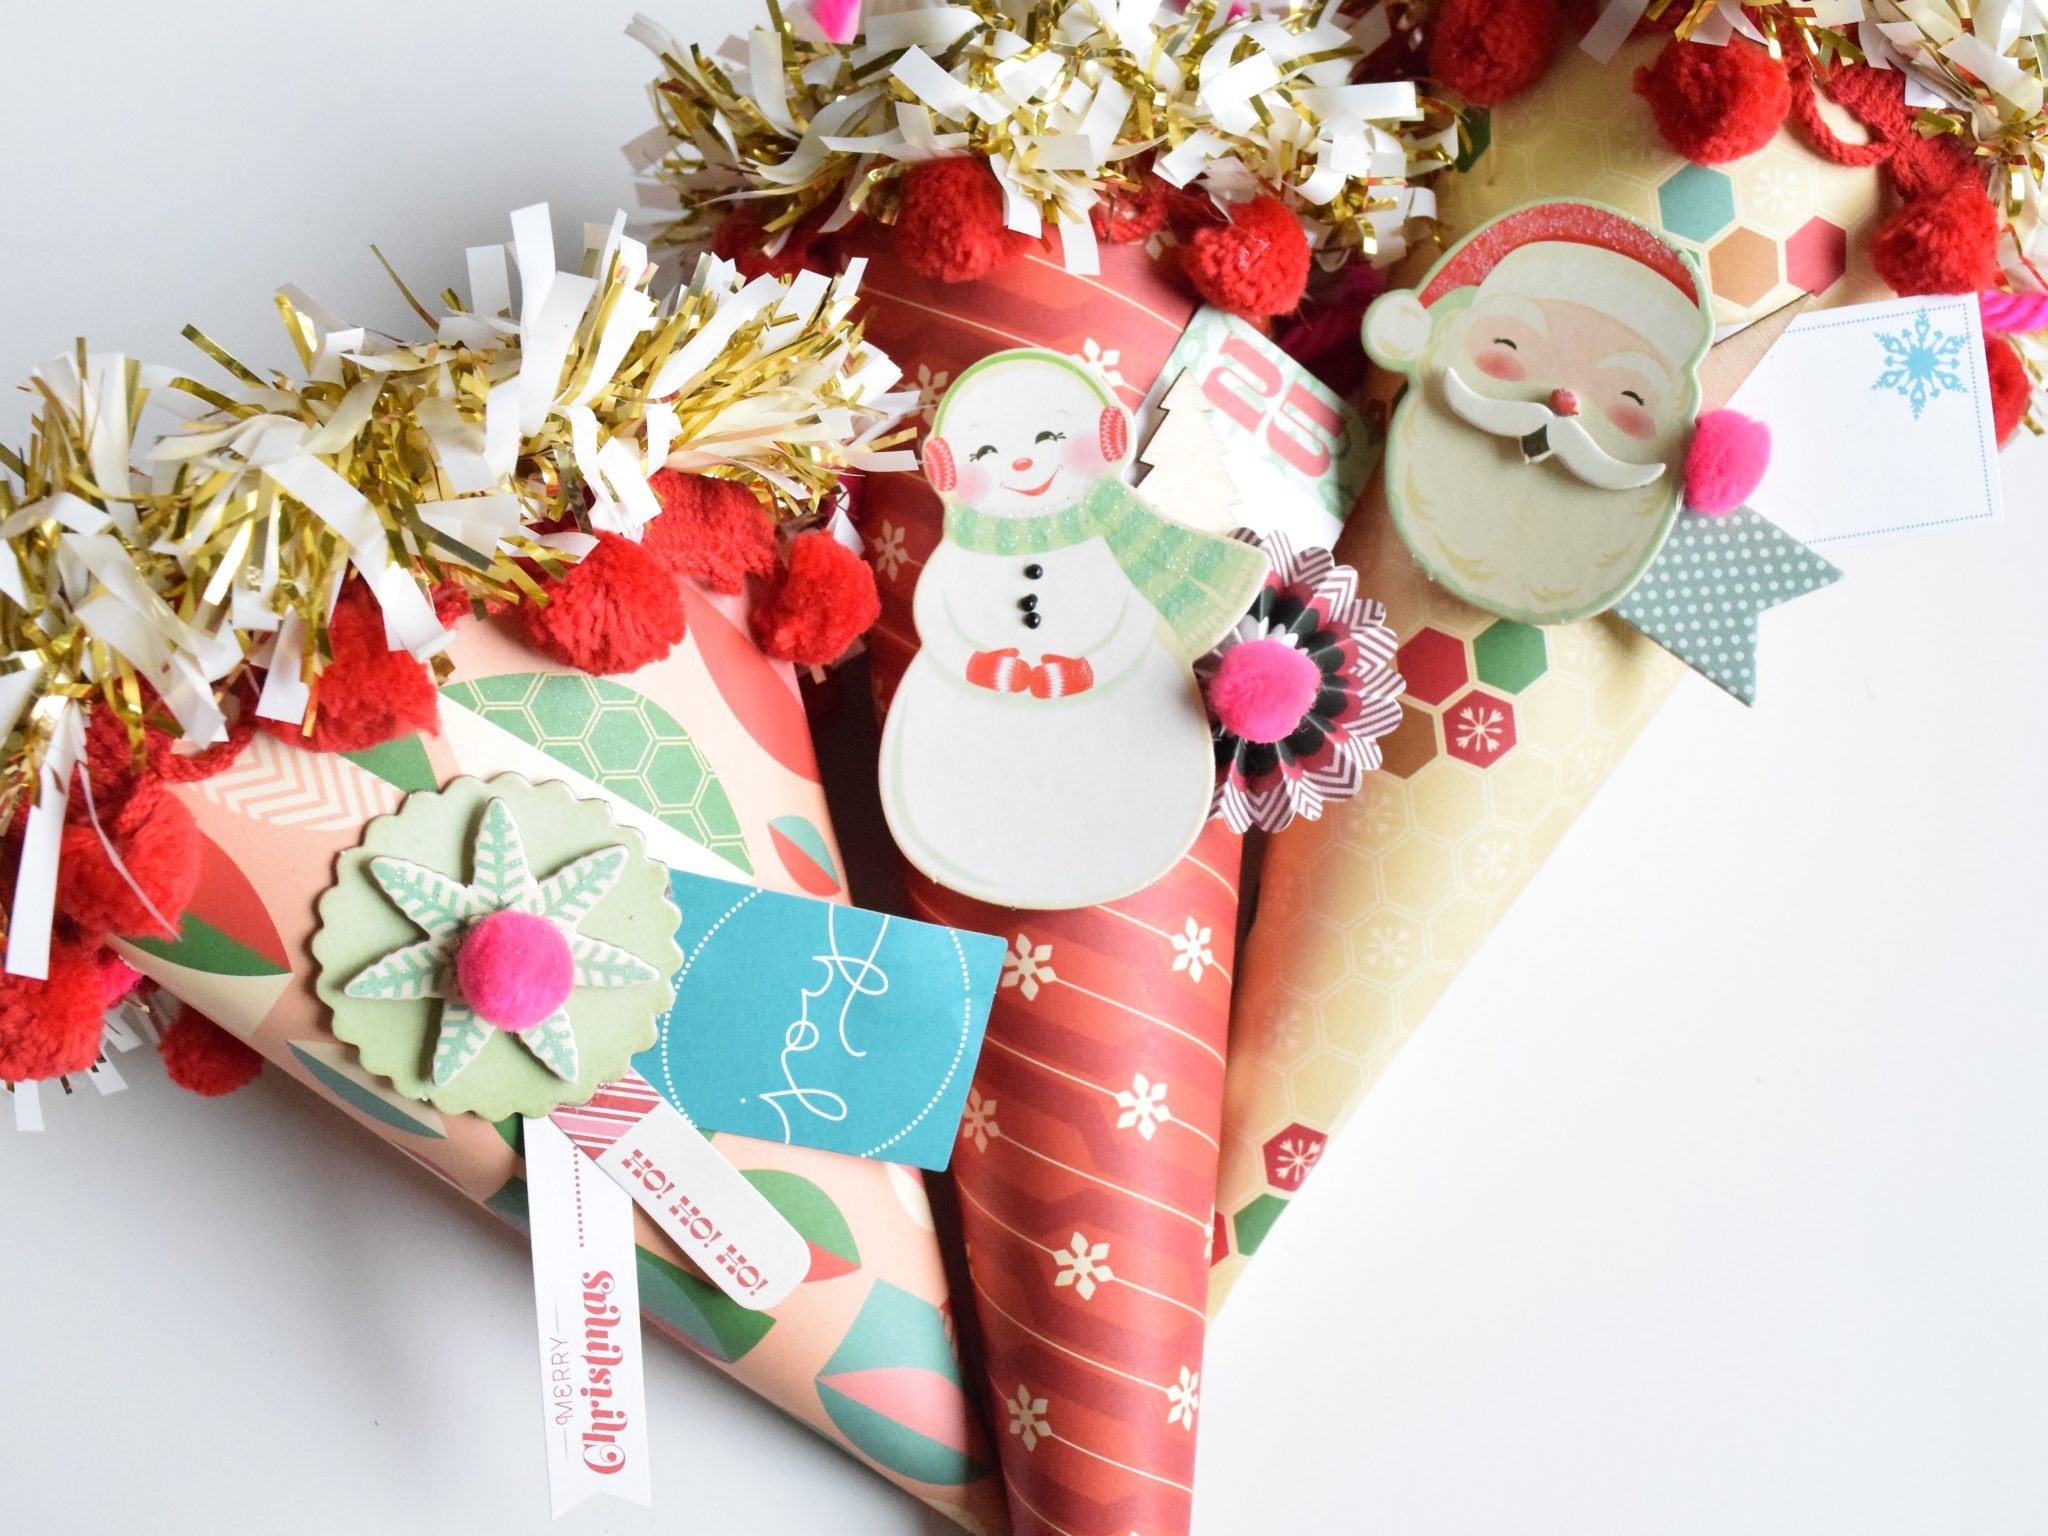 Vintage style Christmas cones as wrapping paper by Jennifer Perkins